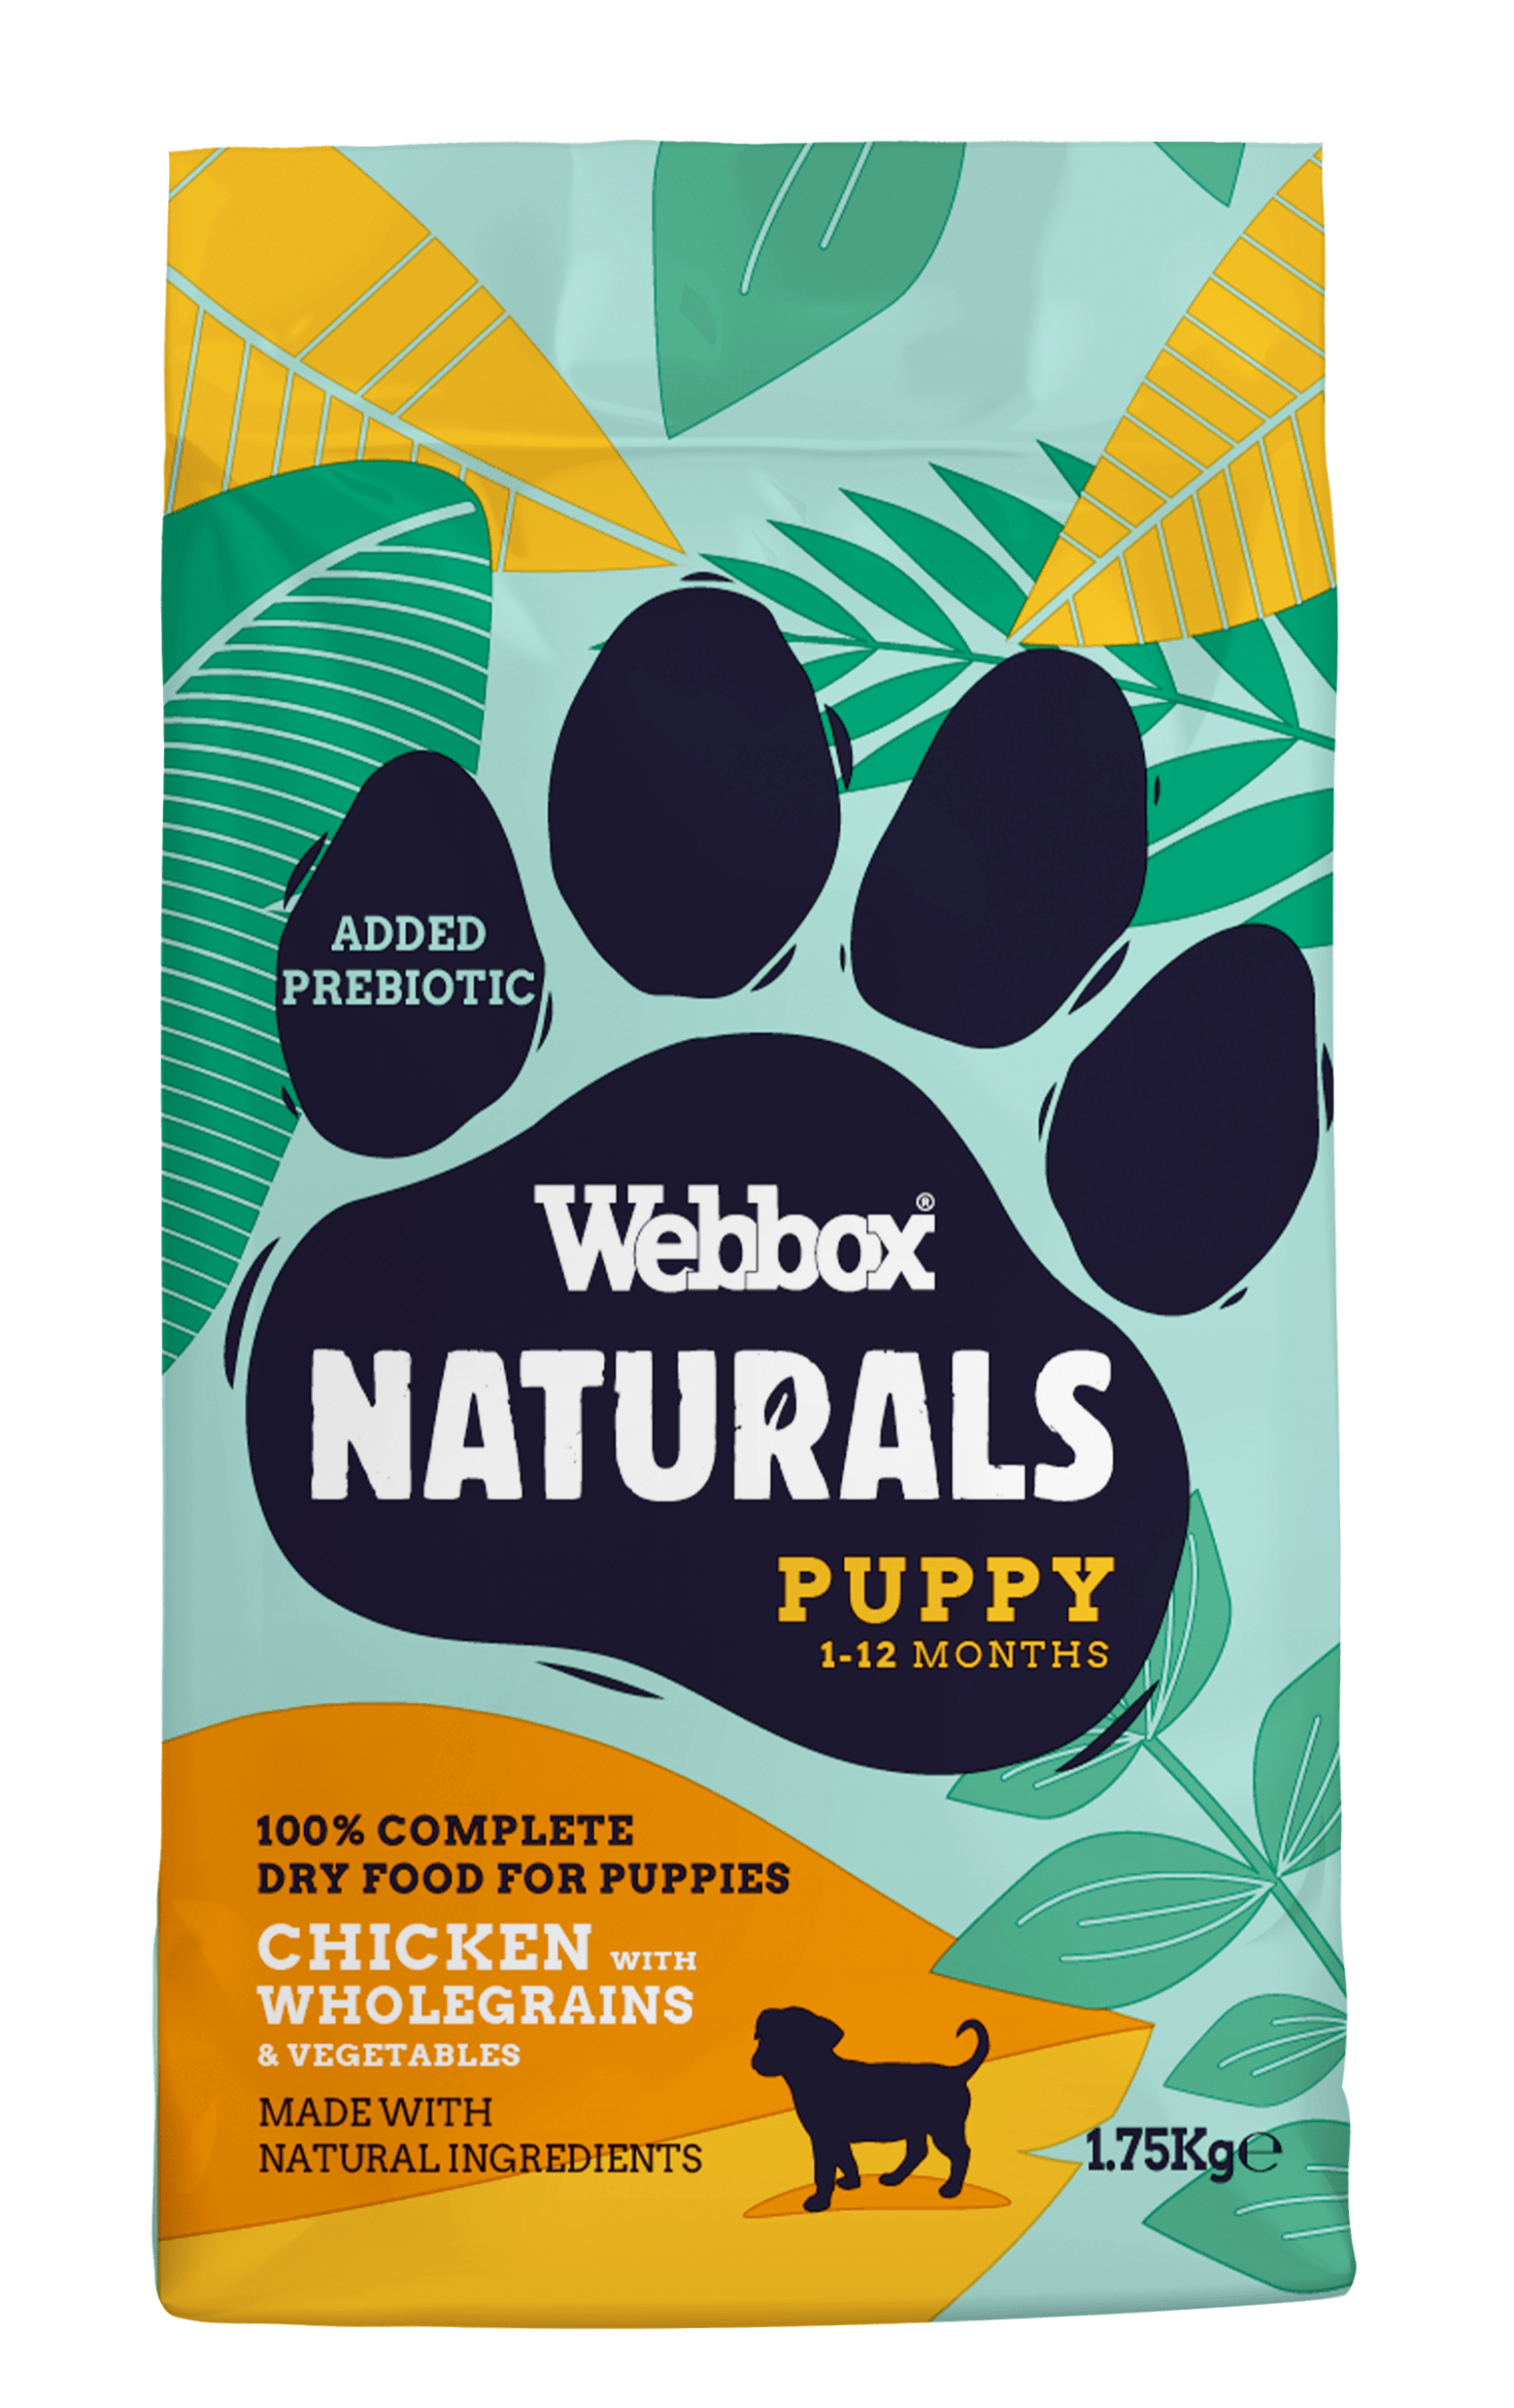 Webbox Naturals Puppy Chicken Dry Food